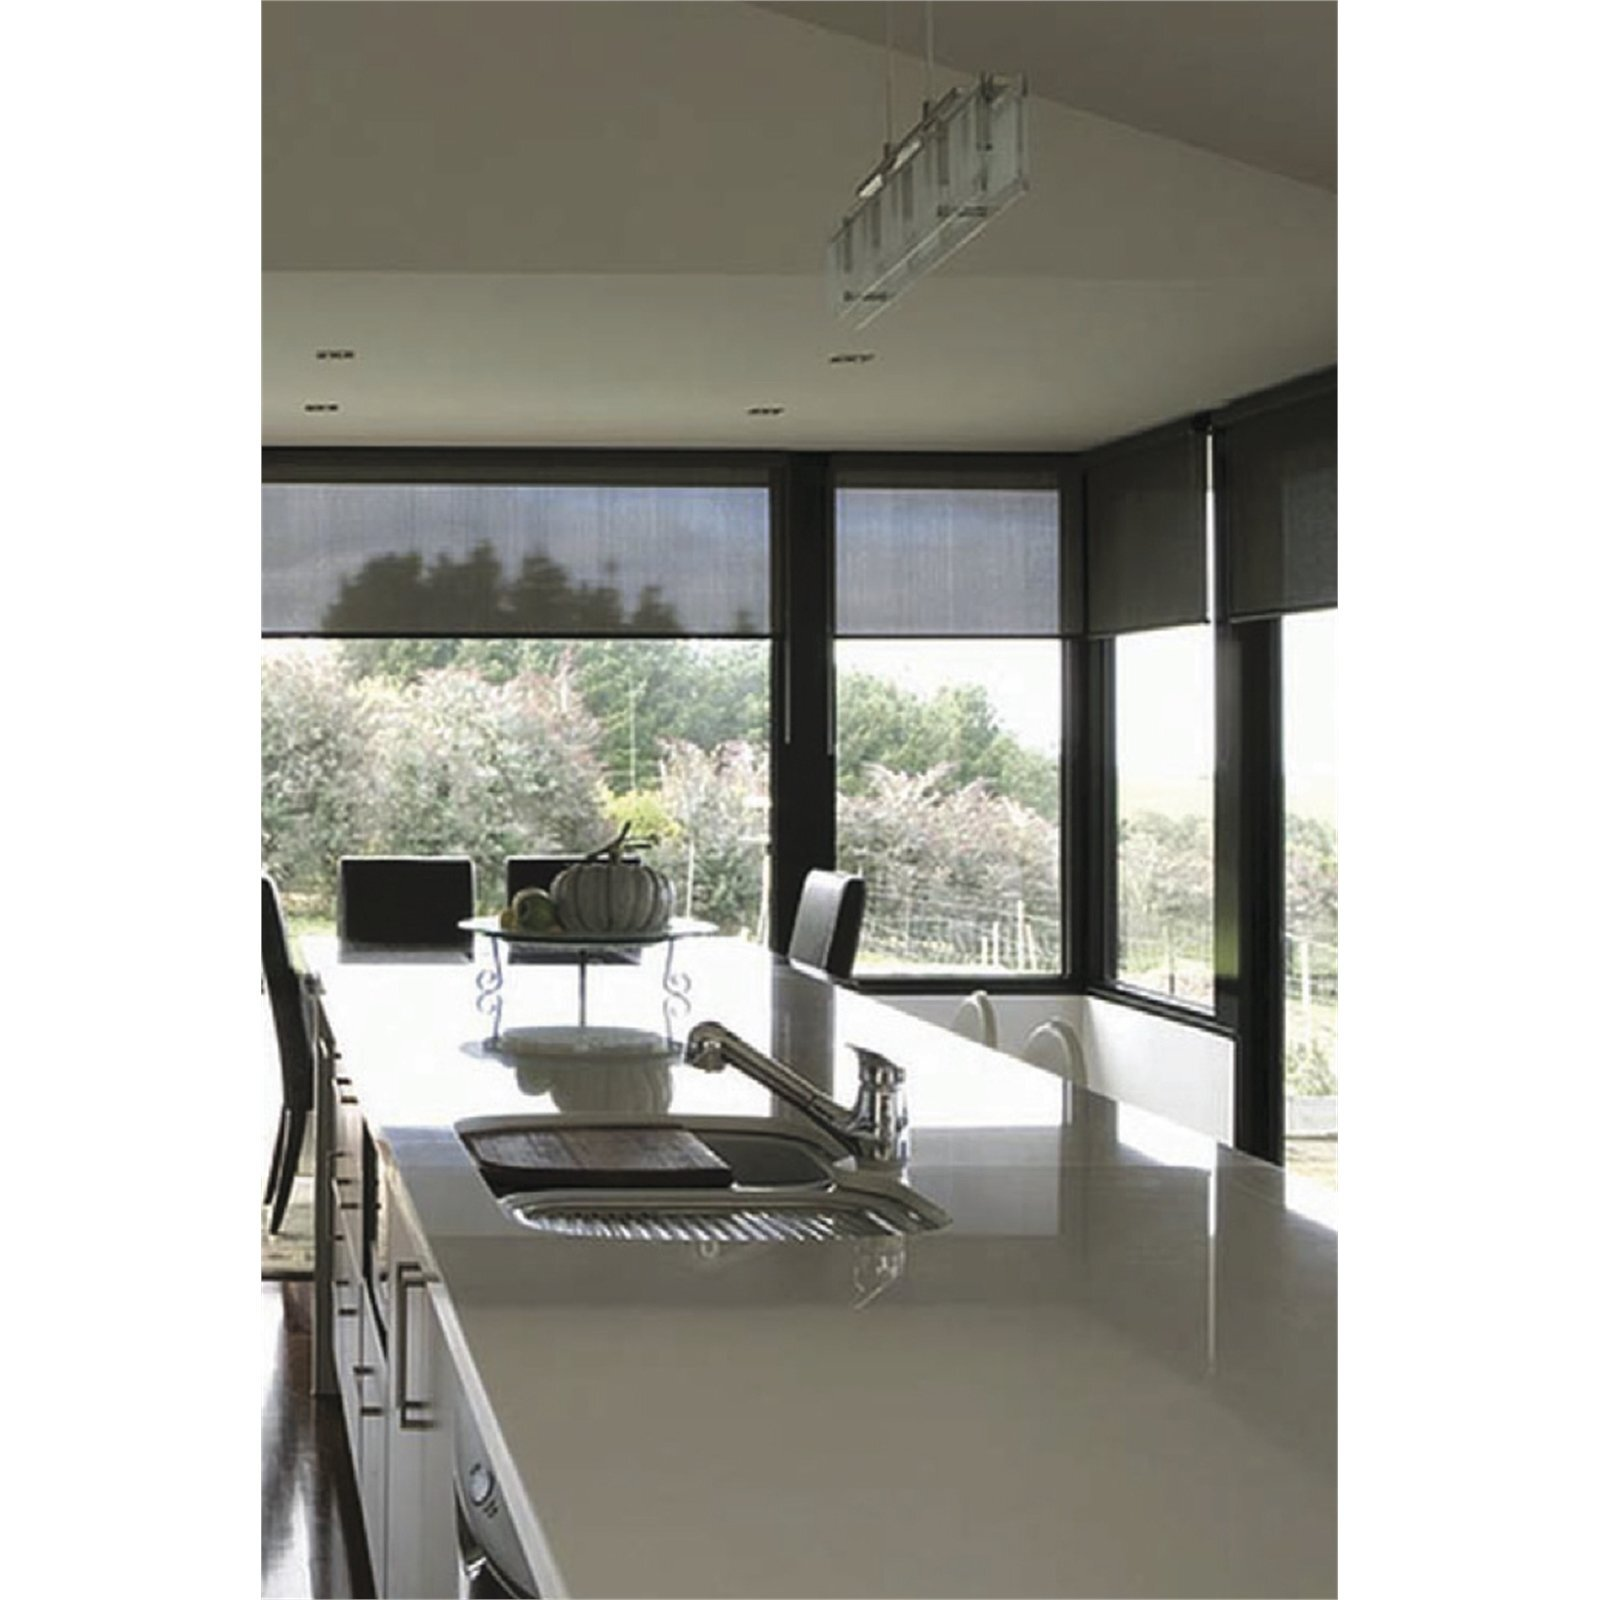 Riva 1515 - 1814 x 1915 - 2114mm Solarfilter 97 Made To Measure Roller Blind